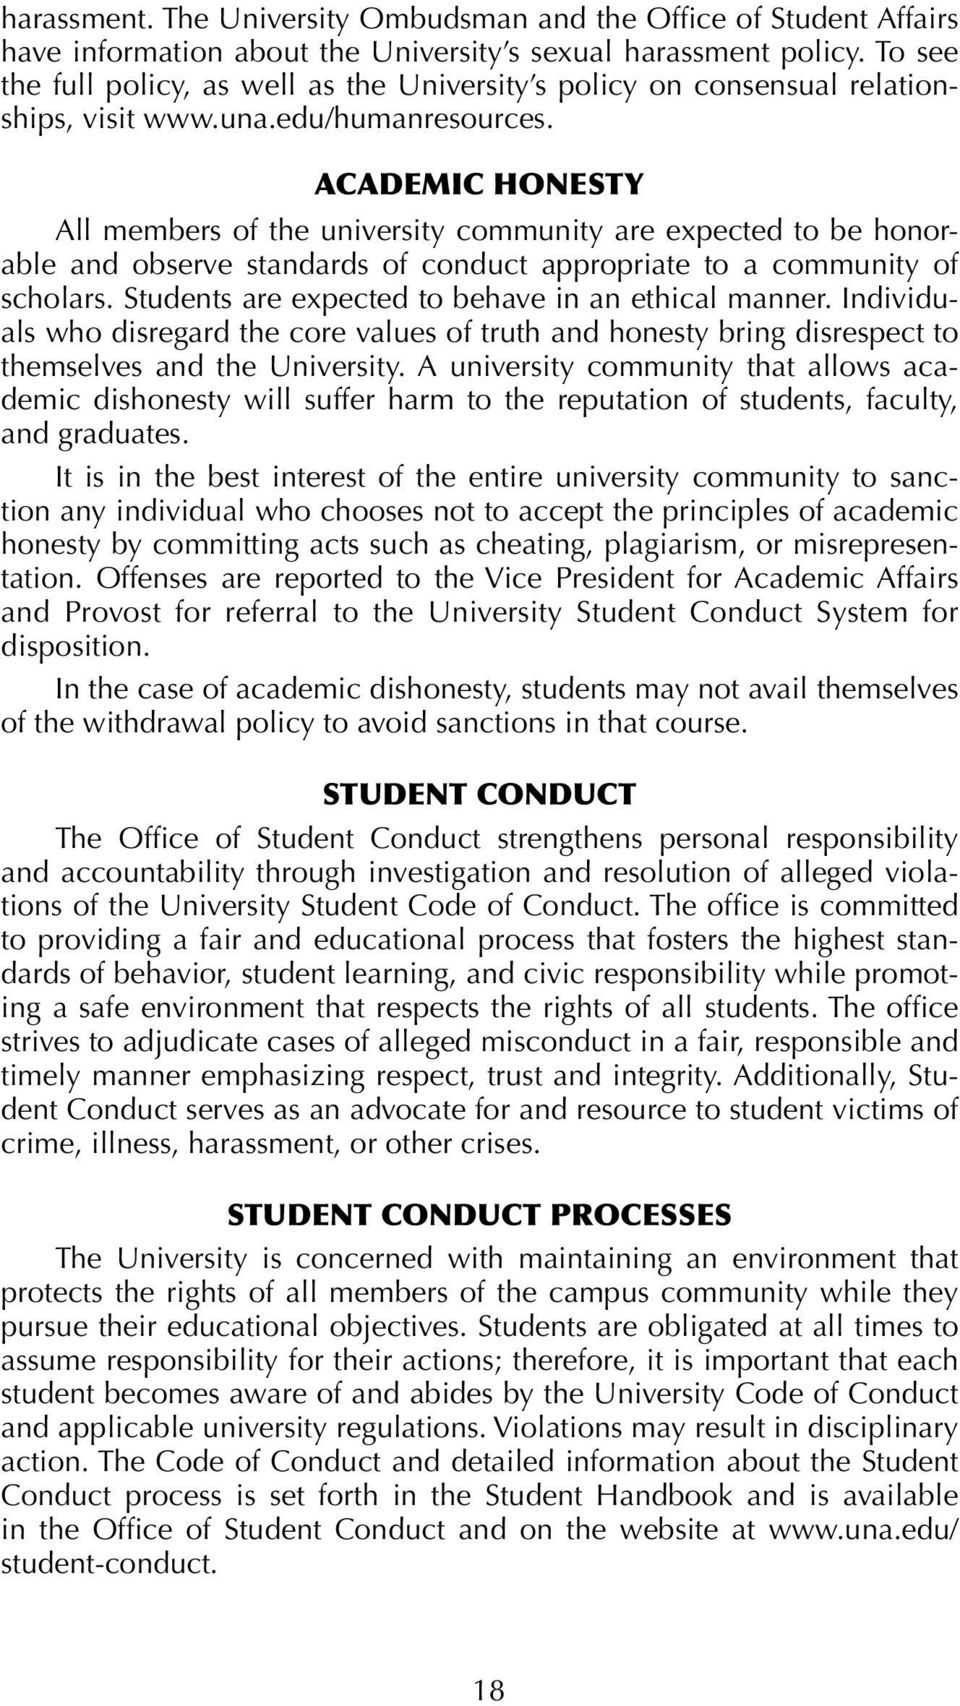 ACADEMIC HONESTY All members of the university community are expected to be honorable and observe standards of conduct appropriate to a community of scholars.